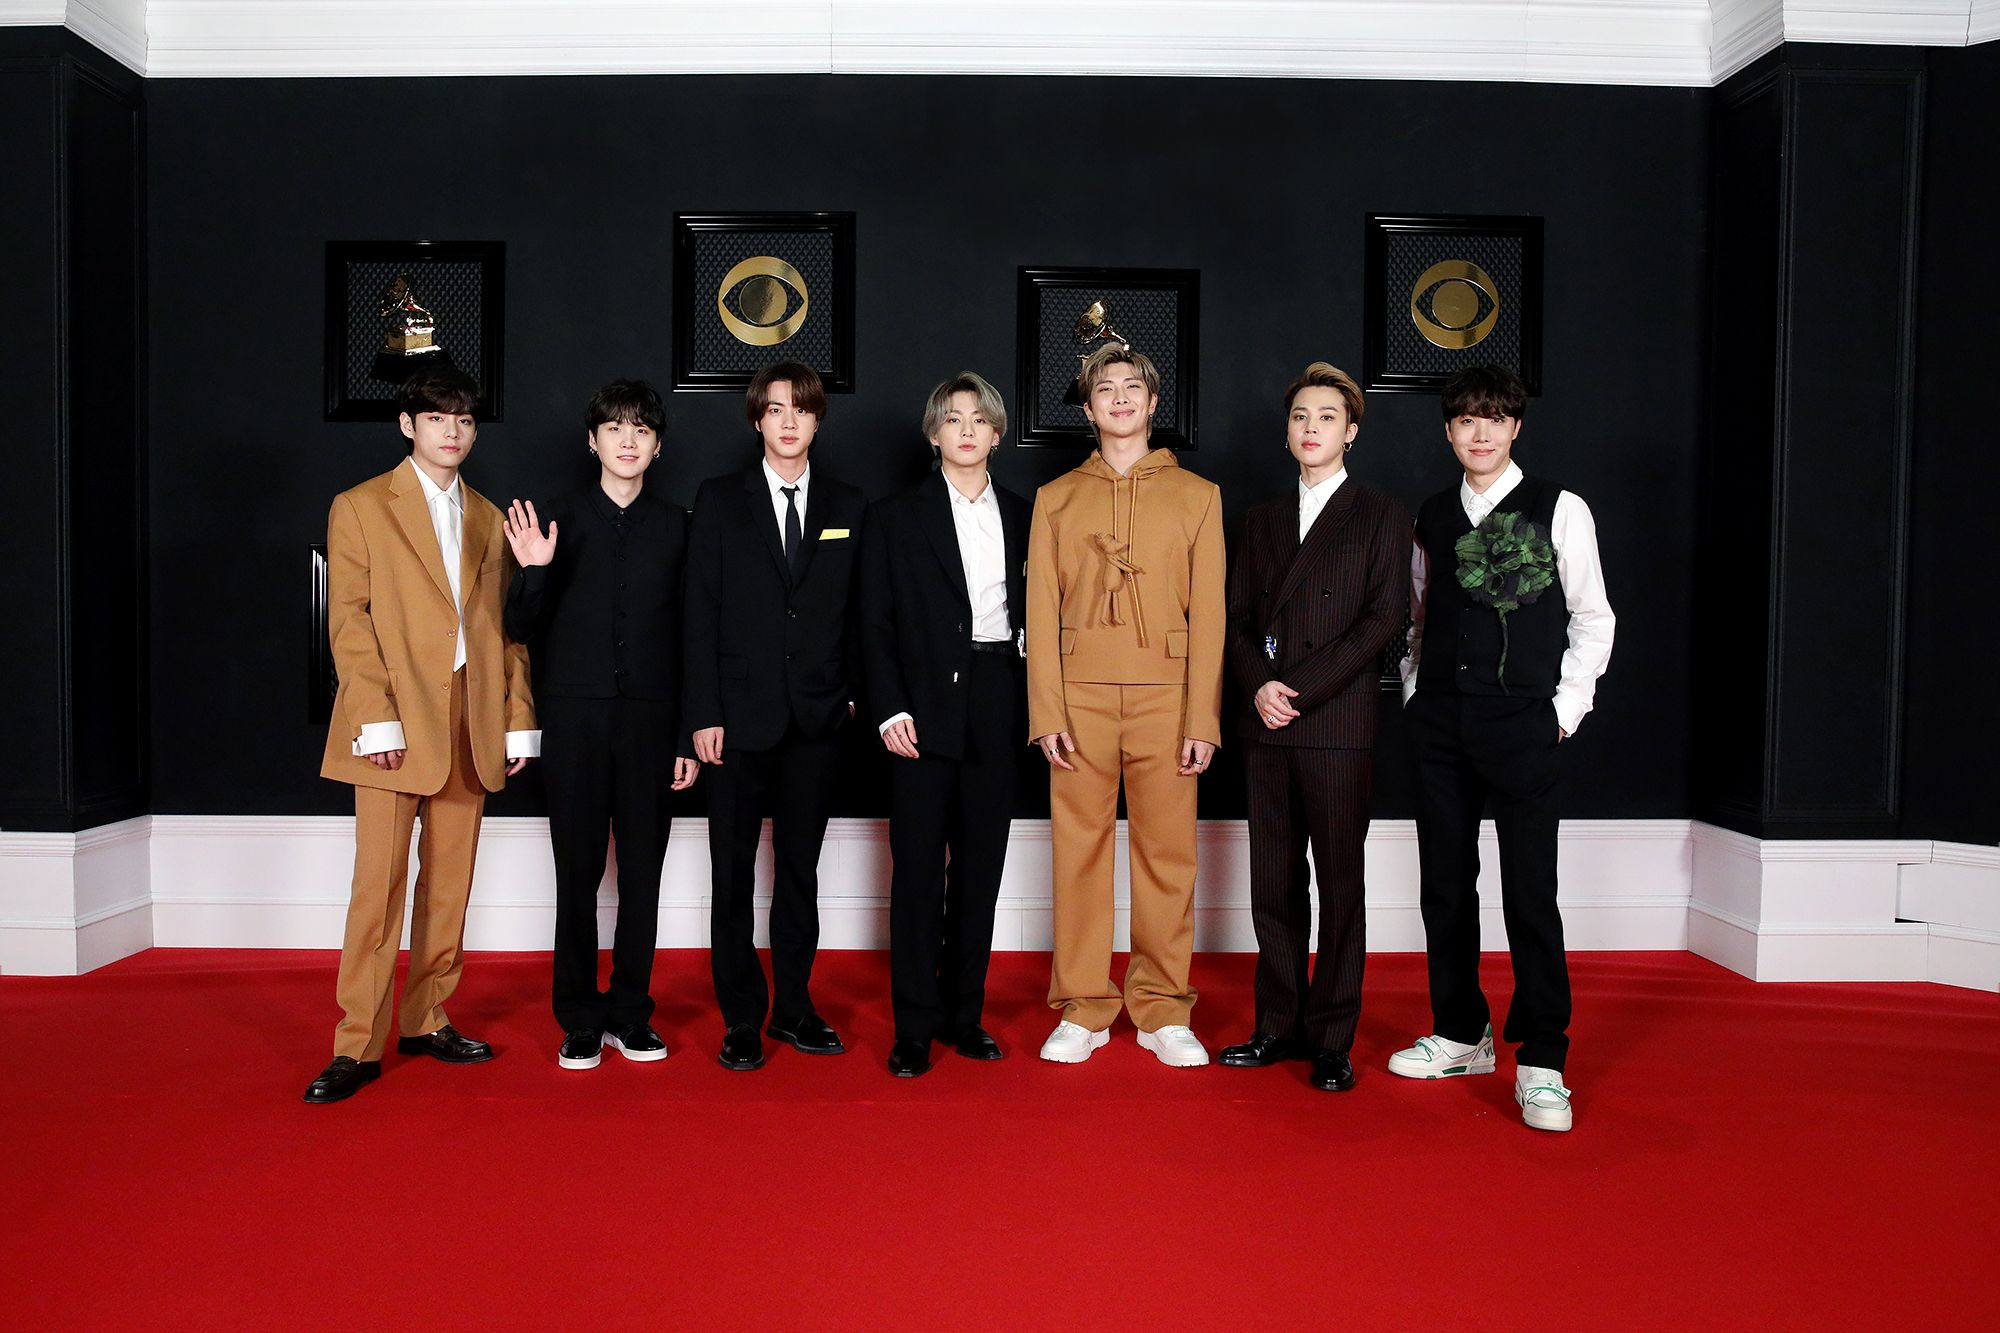 Grammys 2021: BTS Rocks The Red Carpet With Custom Louis Vuitton Suits